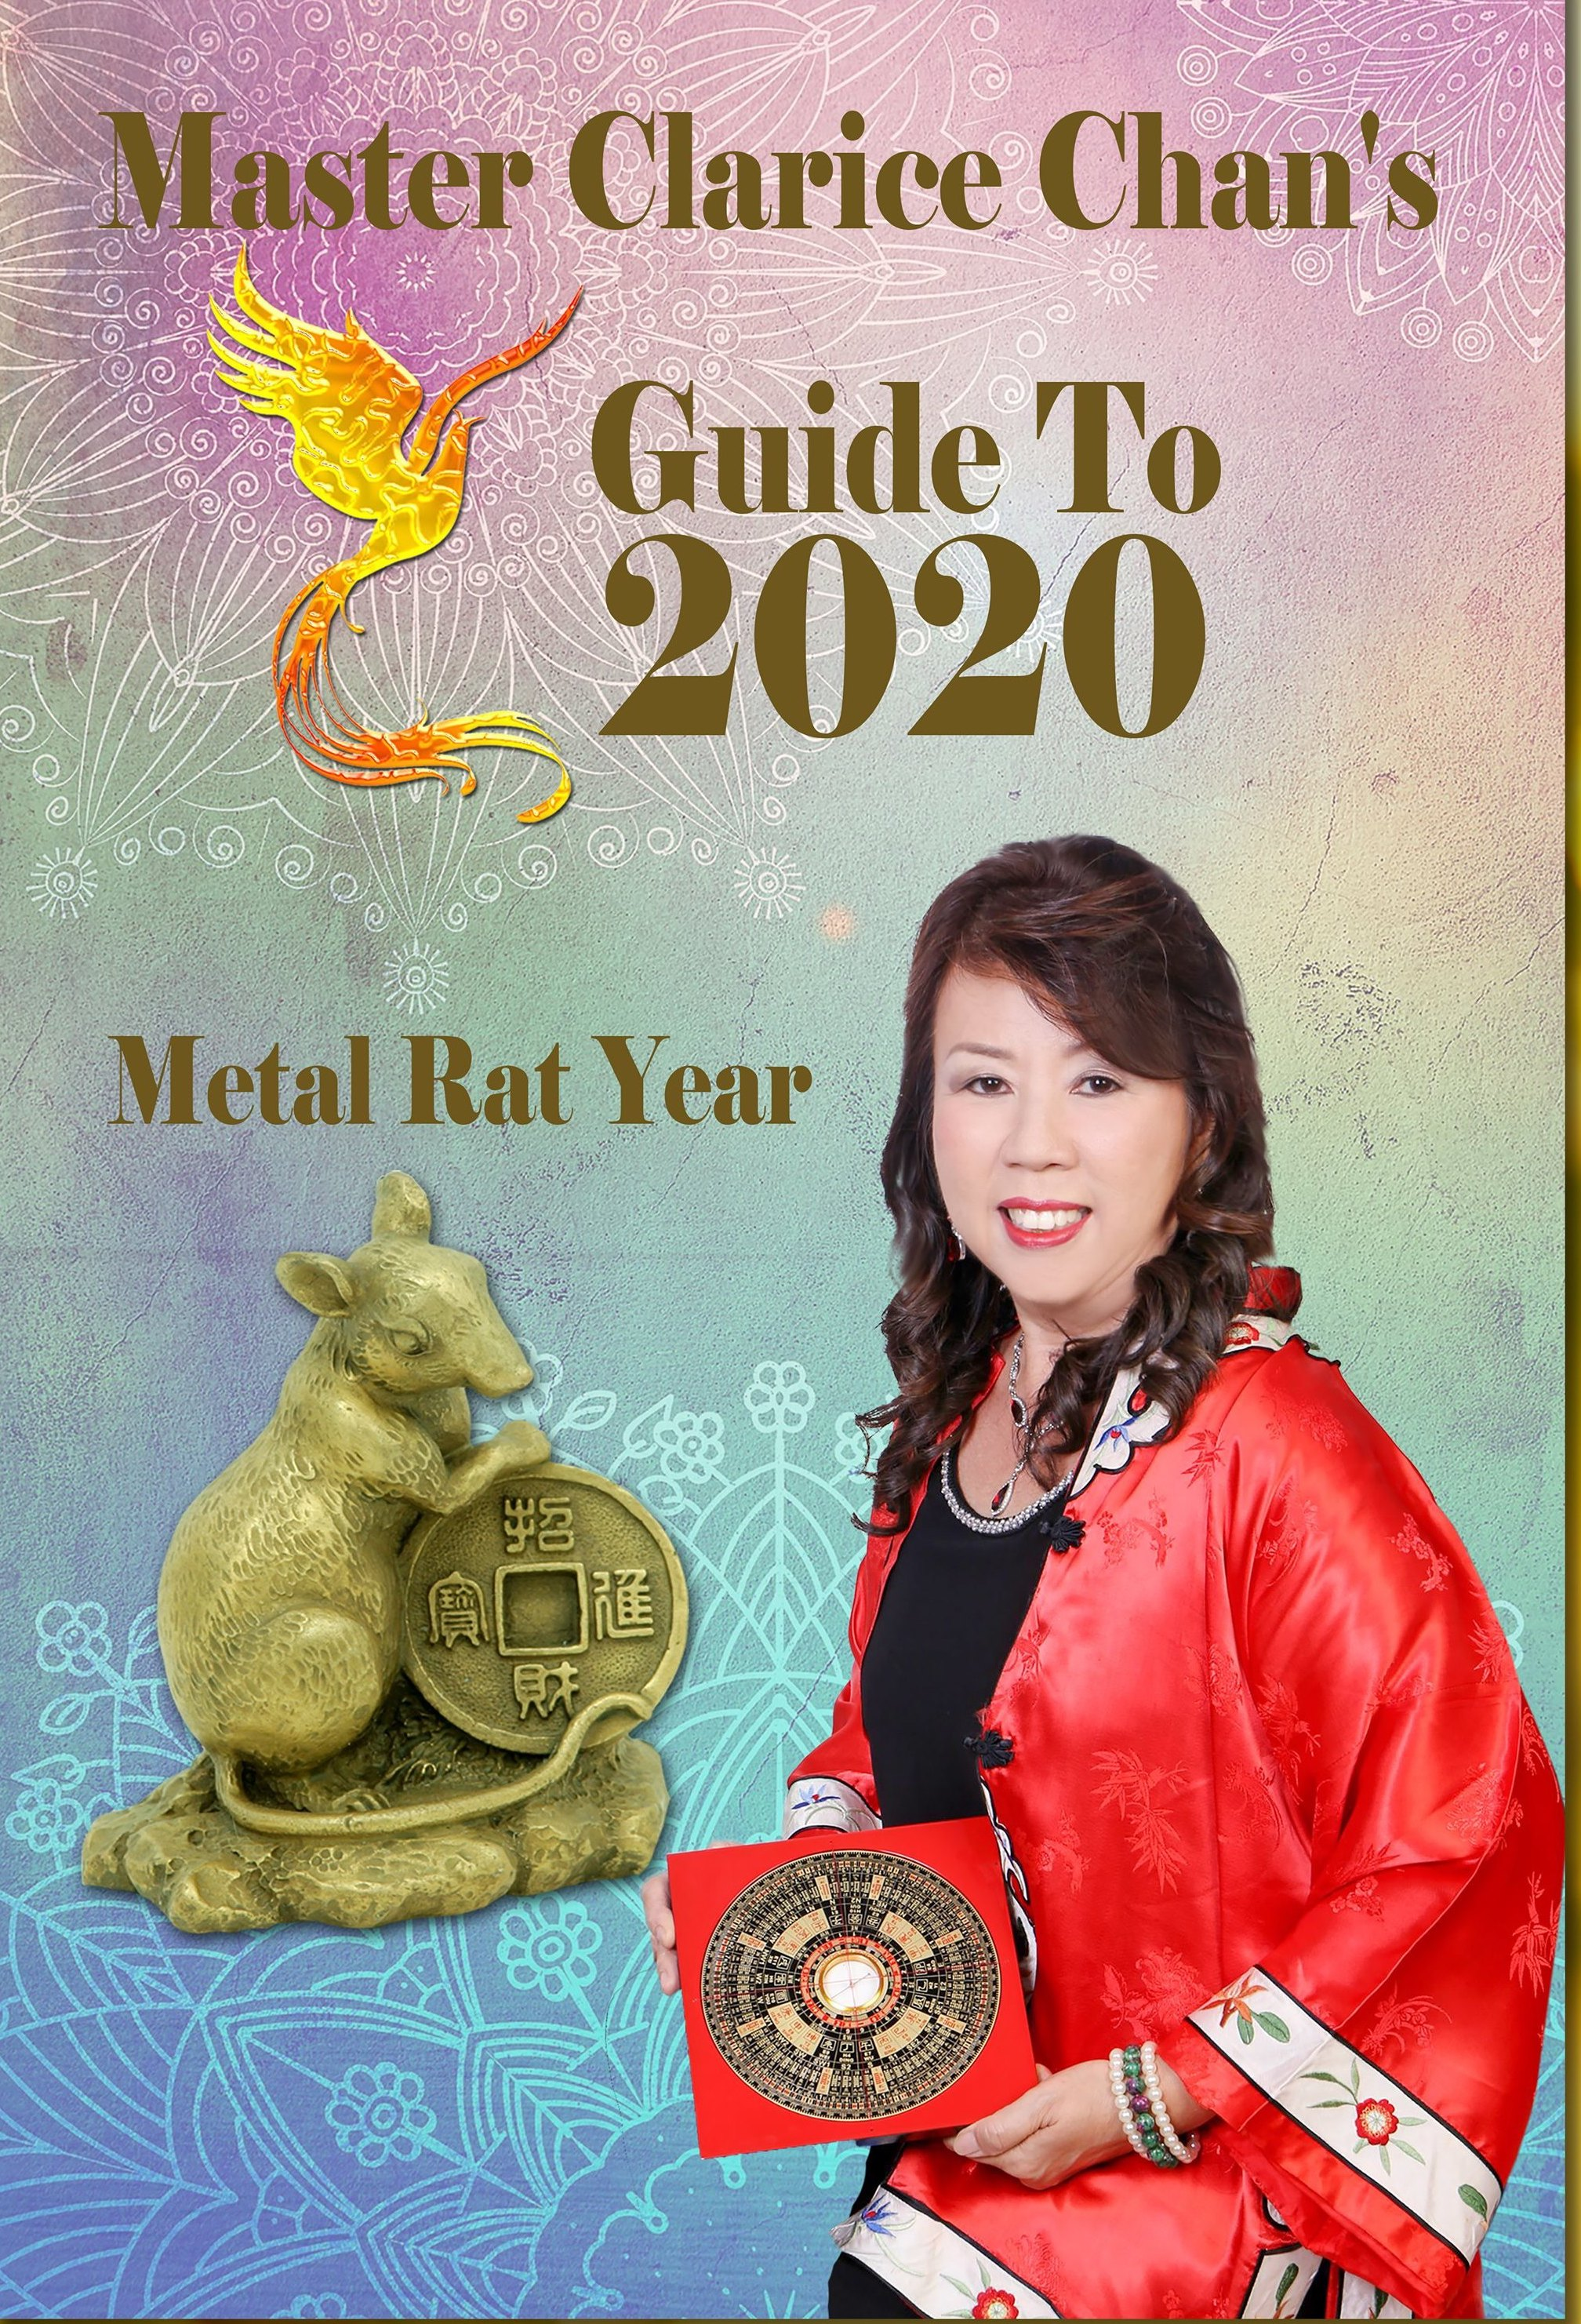 Master Clarice Chan's Guide to 2020 -The Yang Metal Rat Year